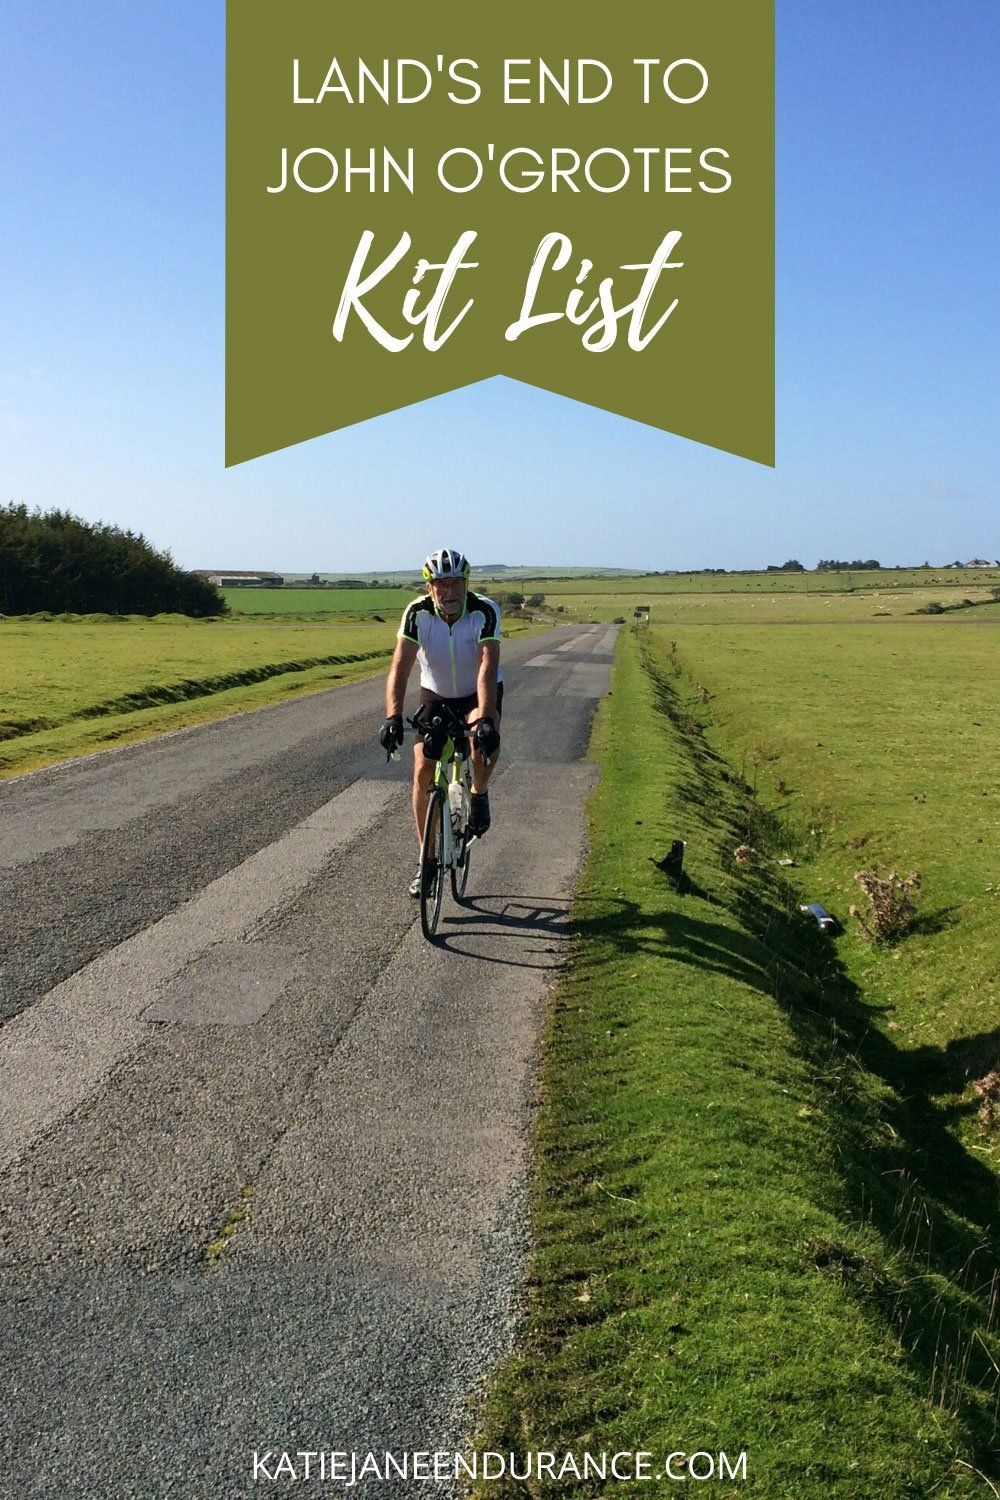 Ultimate Kit List For Unsupported Land S End To John O Grotes Cycle Adventure In 2020 Bikepacking Bikepacking Gear Bicycle Camping